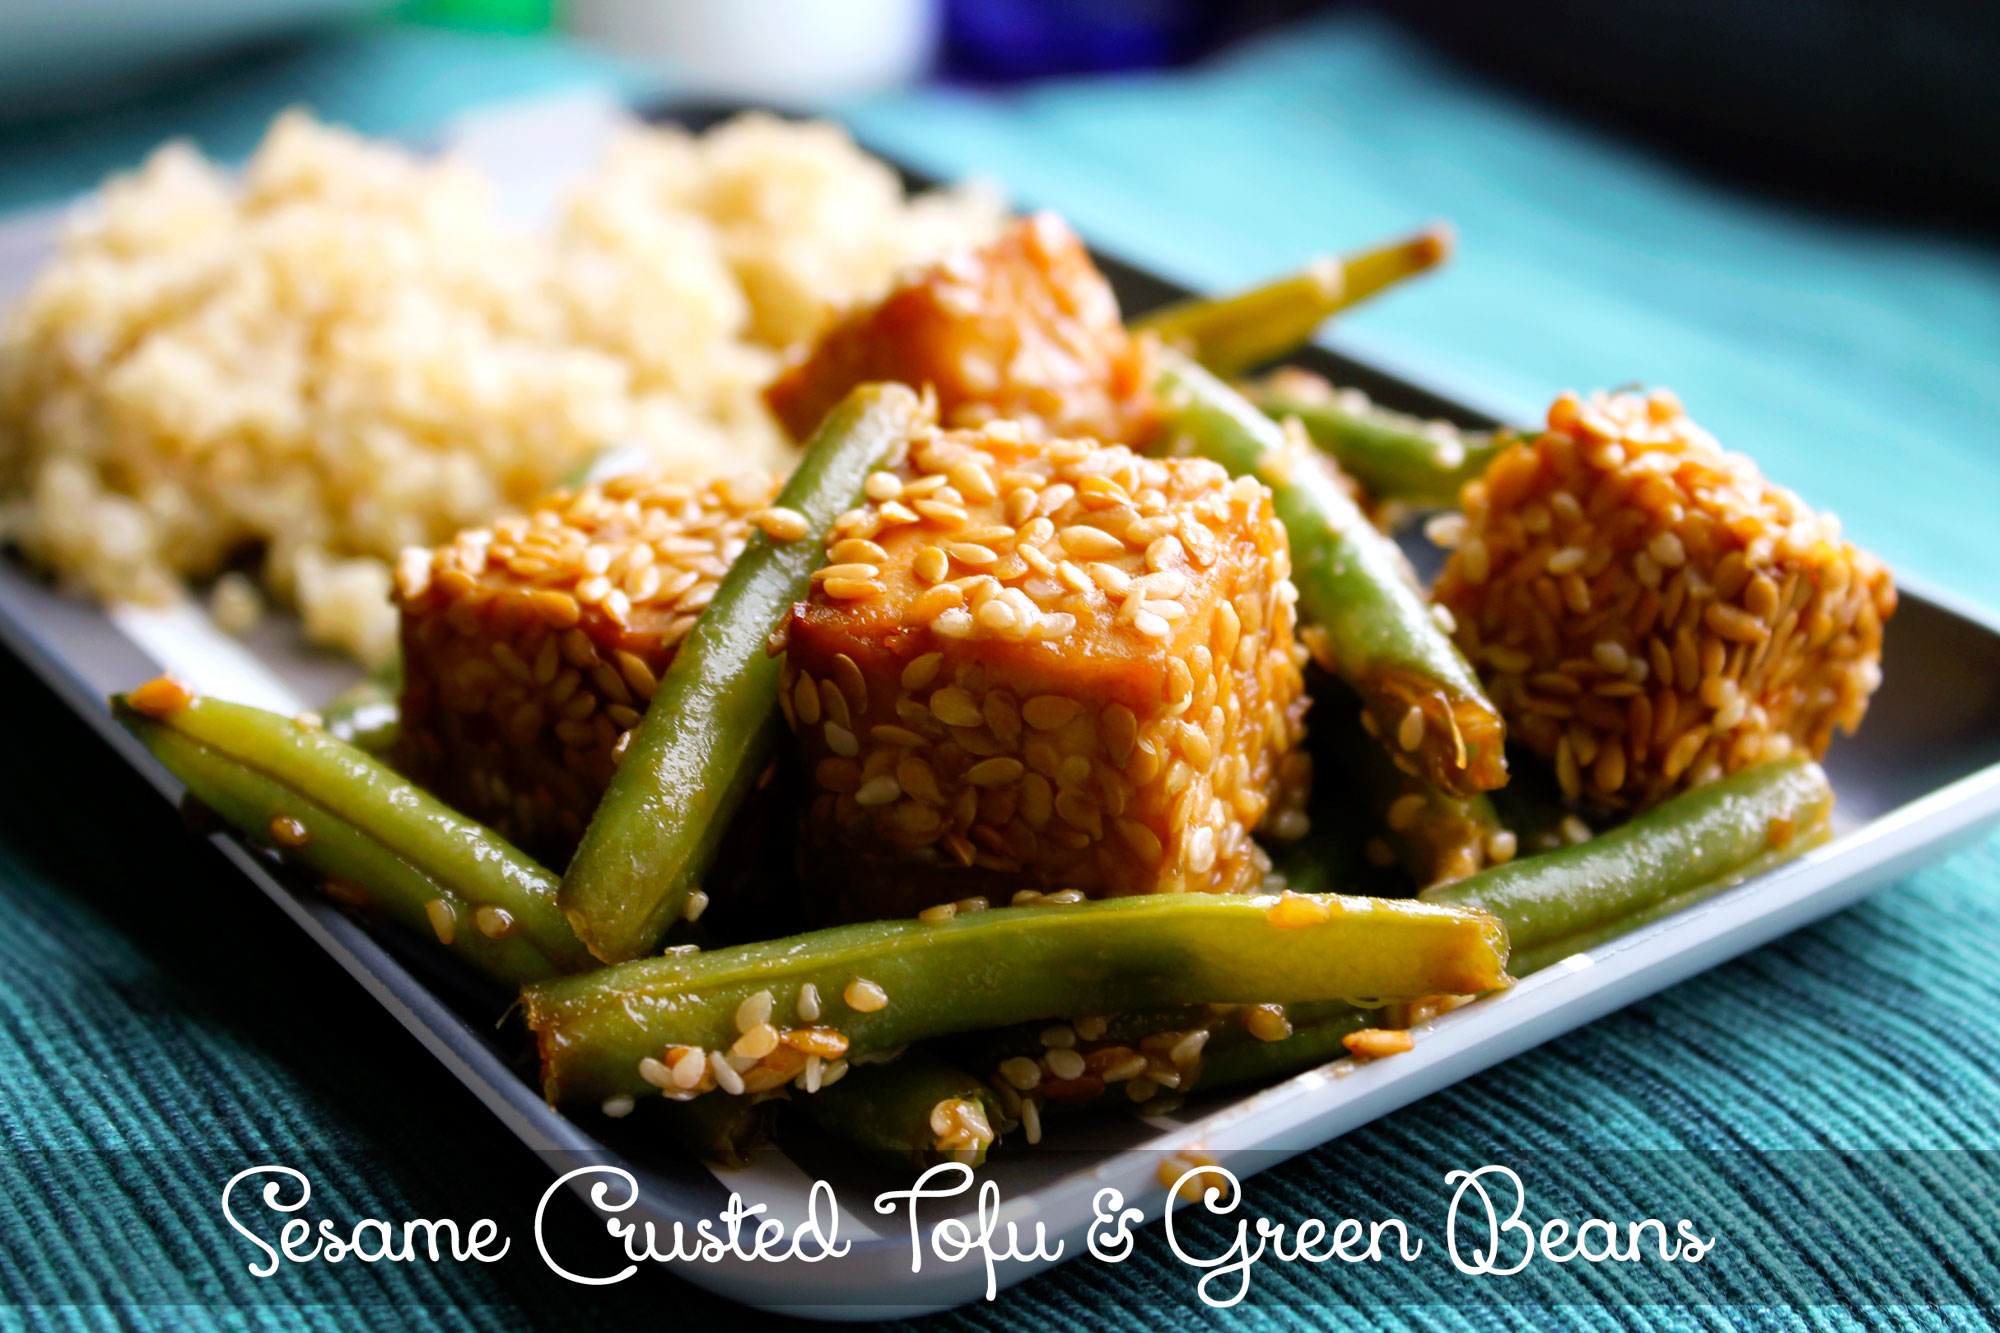 Sesame Crusted Tofu and Green Beans